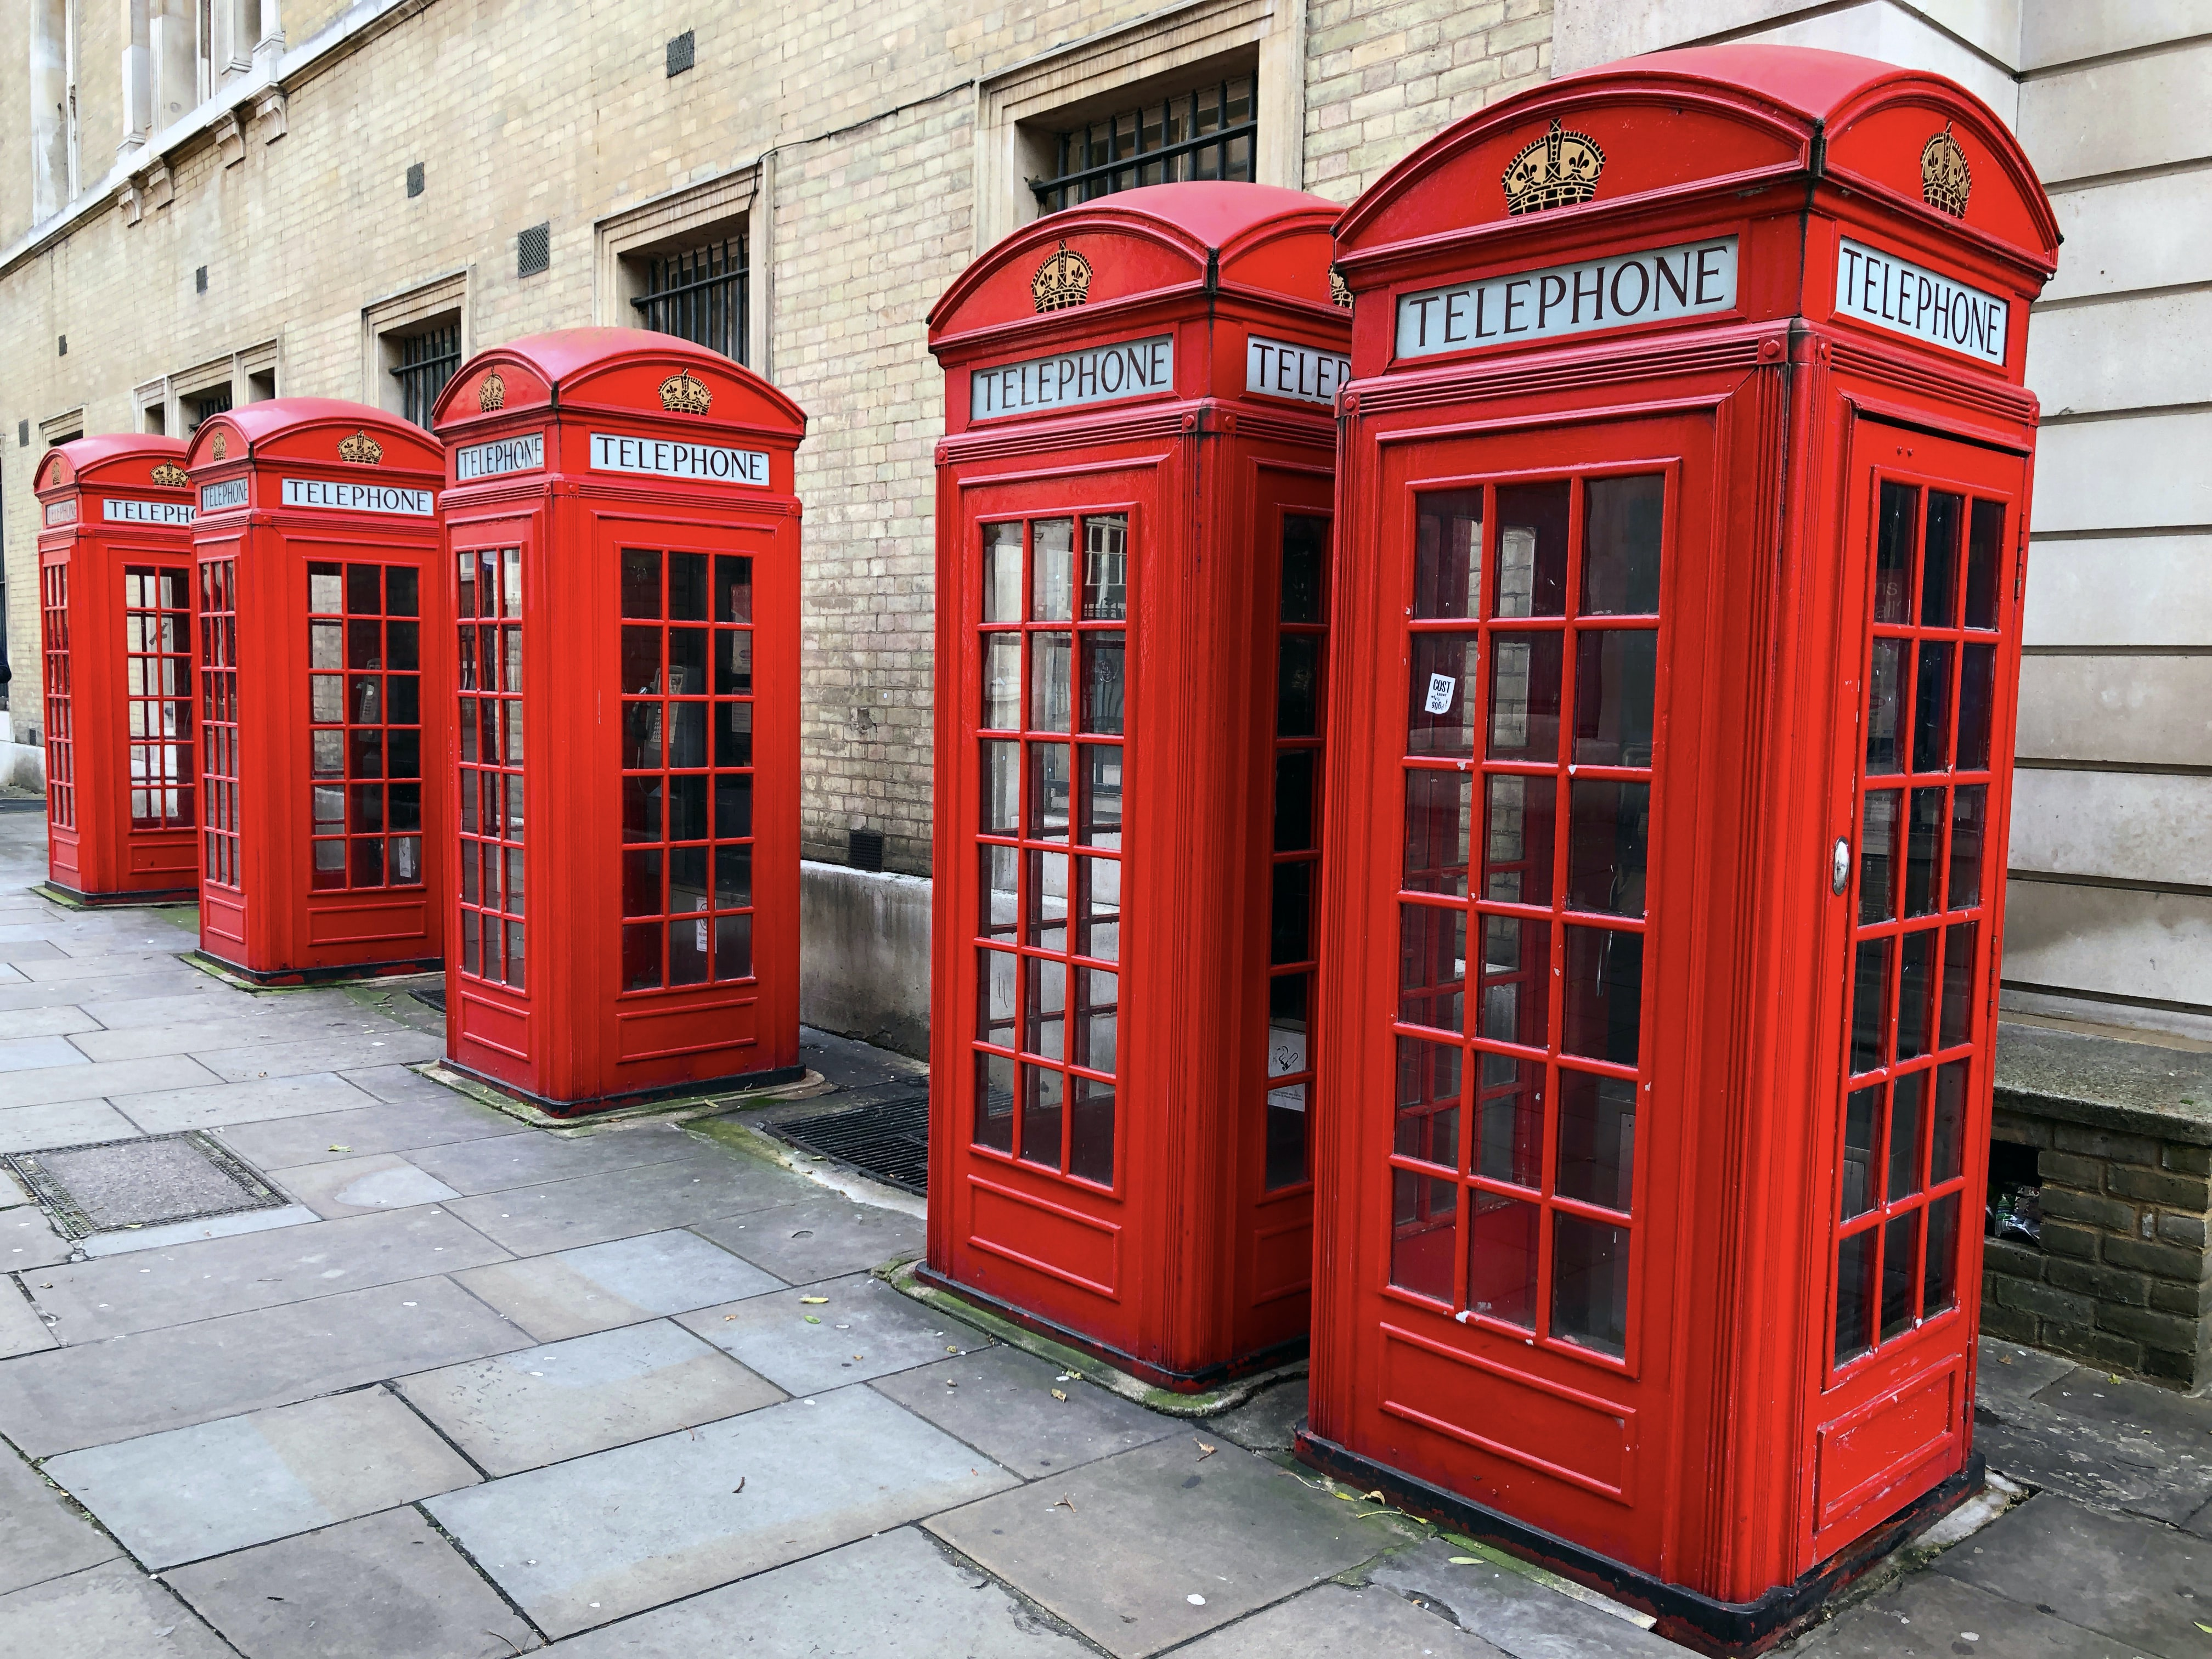 lined-up red telephone booths near building